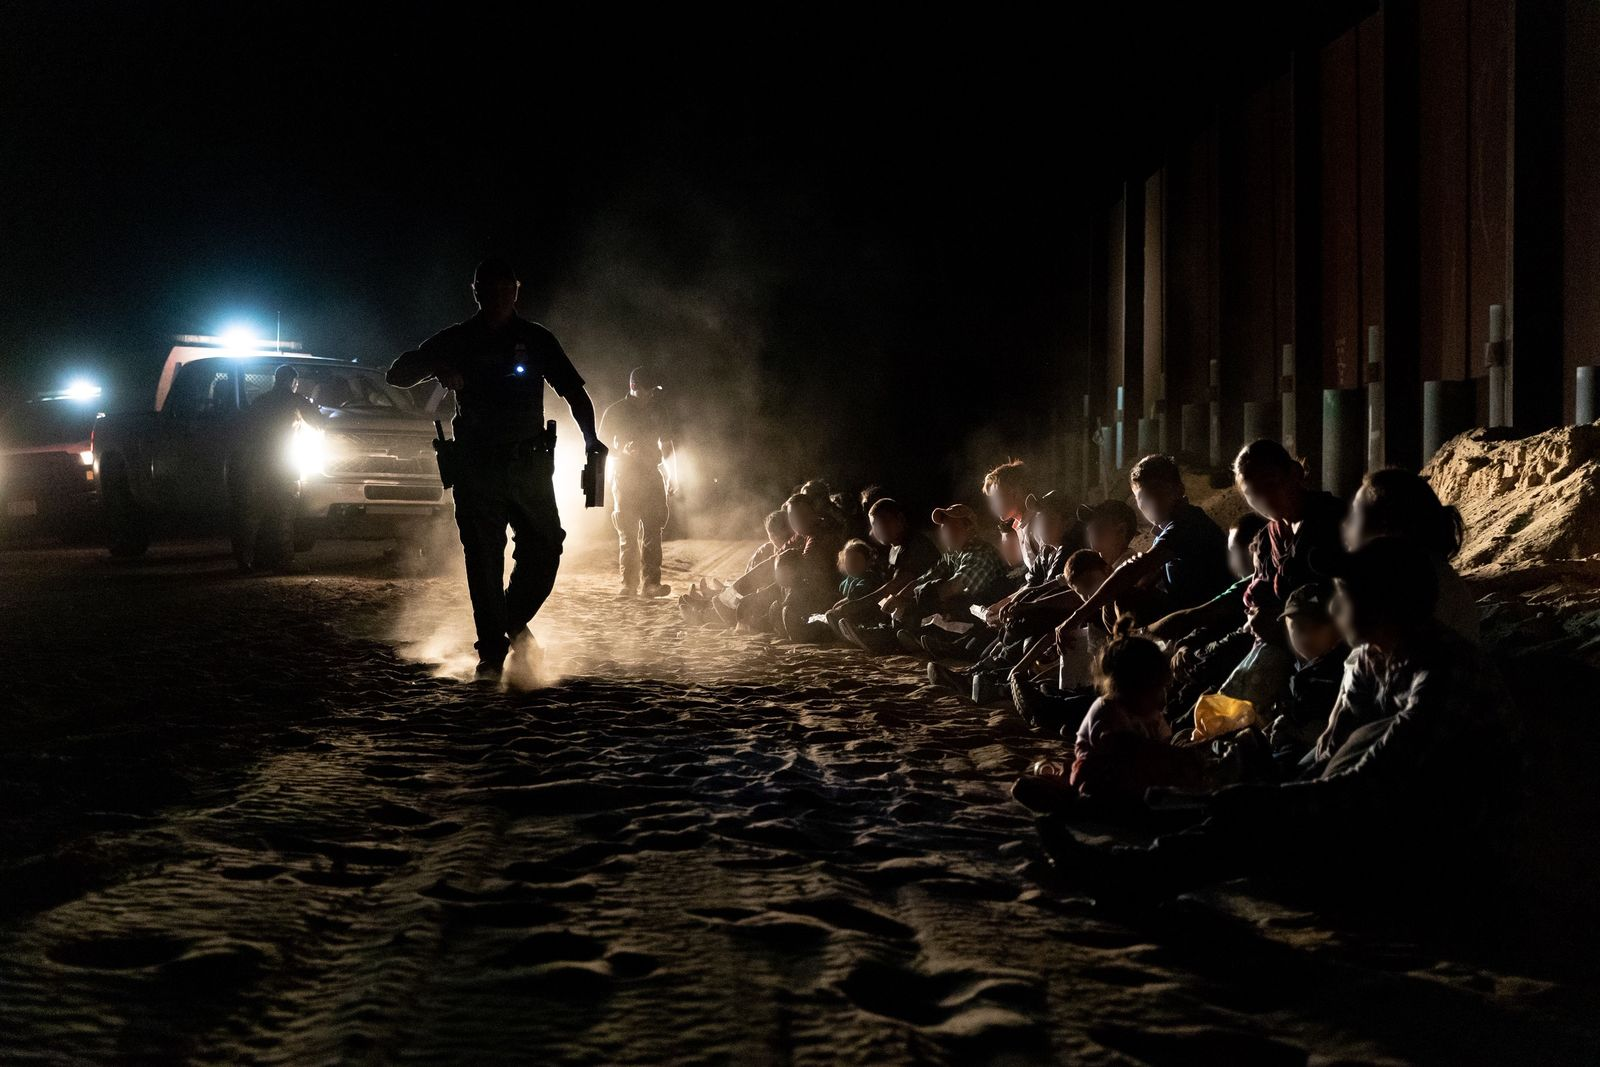 Large groups of illegal aliens were apprehended by Yuma Sector Border Patrol agents near Yuma, AZ on June 4, 2019. The Yuma Sector continues to see a large number of Central Americans per day crossing illegally and surrendering to agents. (CBP photo by Jerry Glaser)